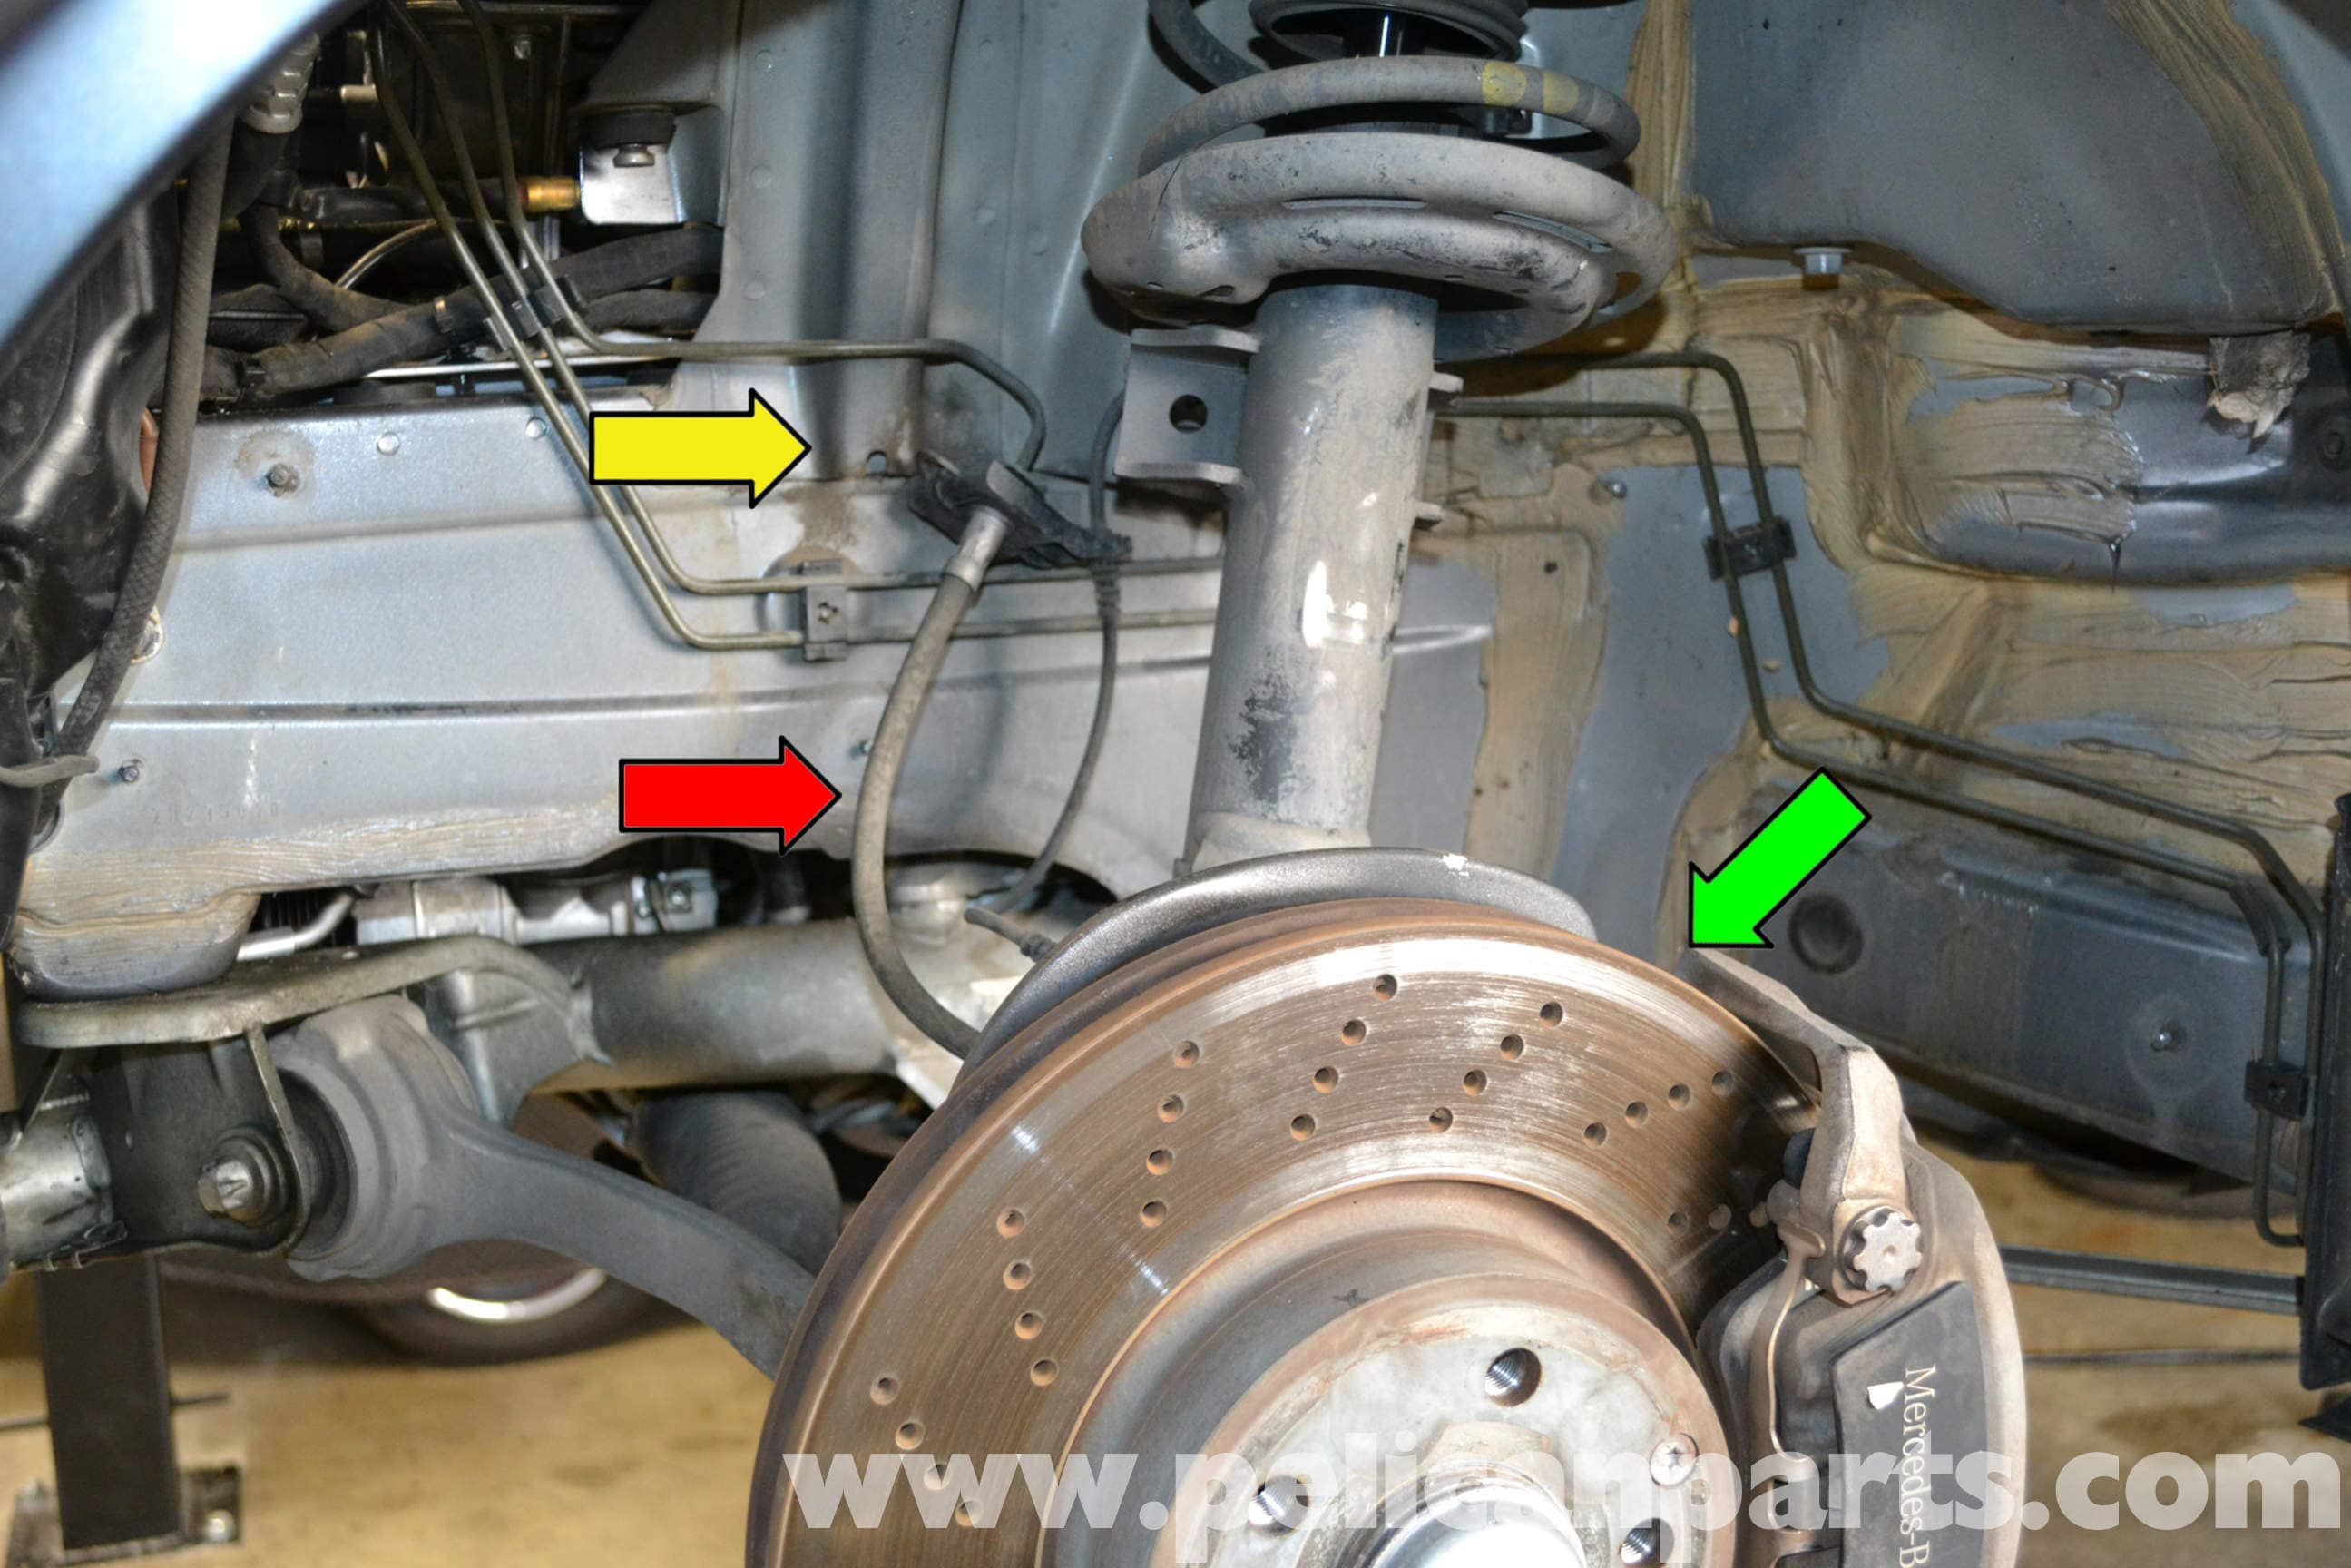 How Do You Bleed Brakes >> Mercedes-Benz W204 Brake Line Replacement - (2008-2014) C250, C300, C350 | Pelican Parts DIY ...